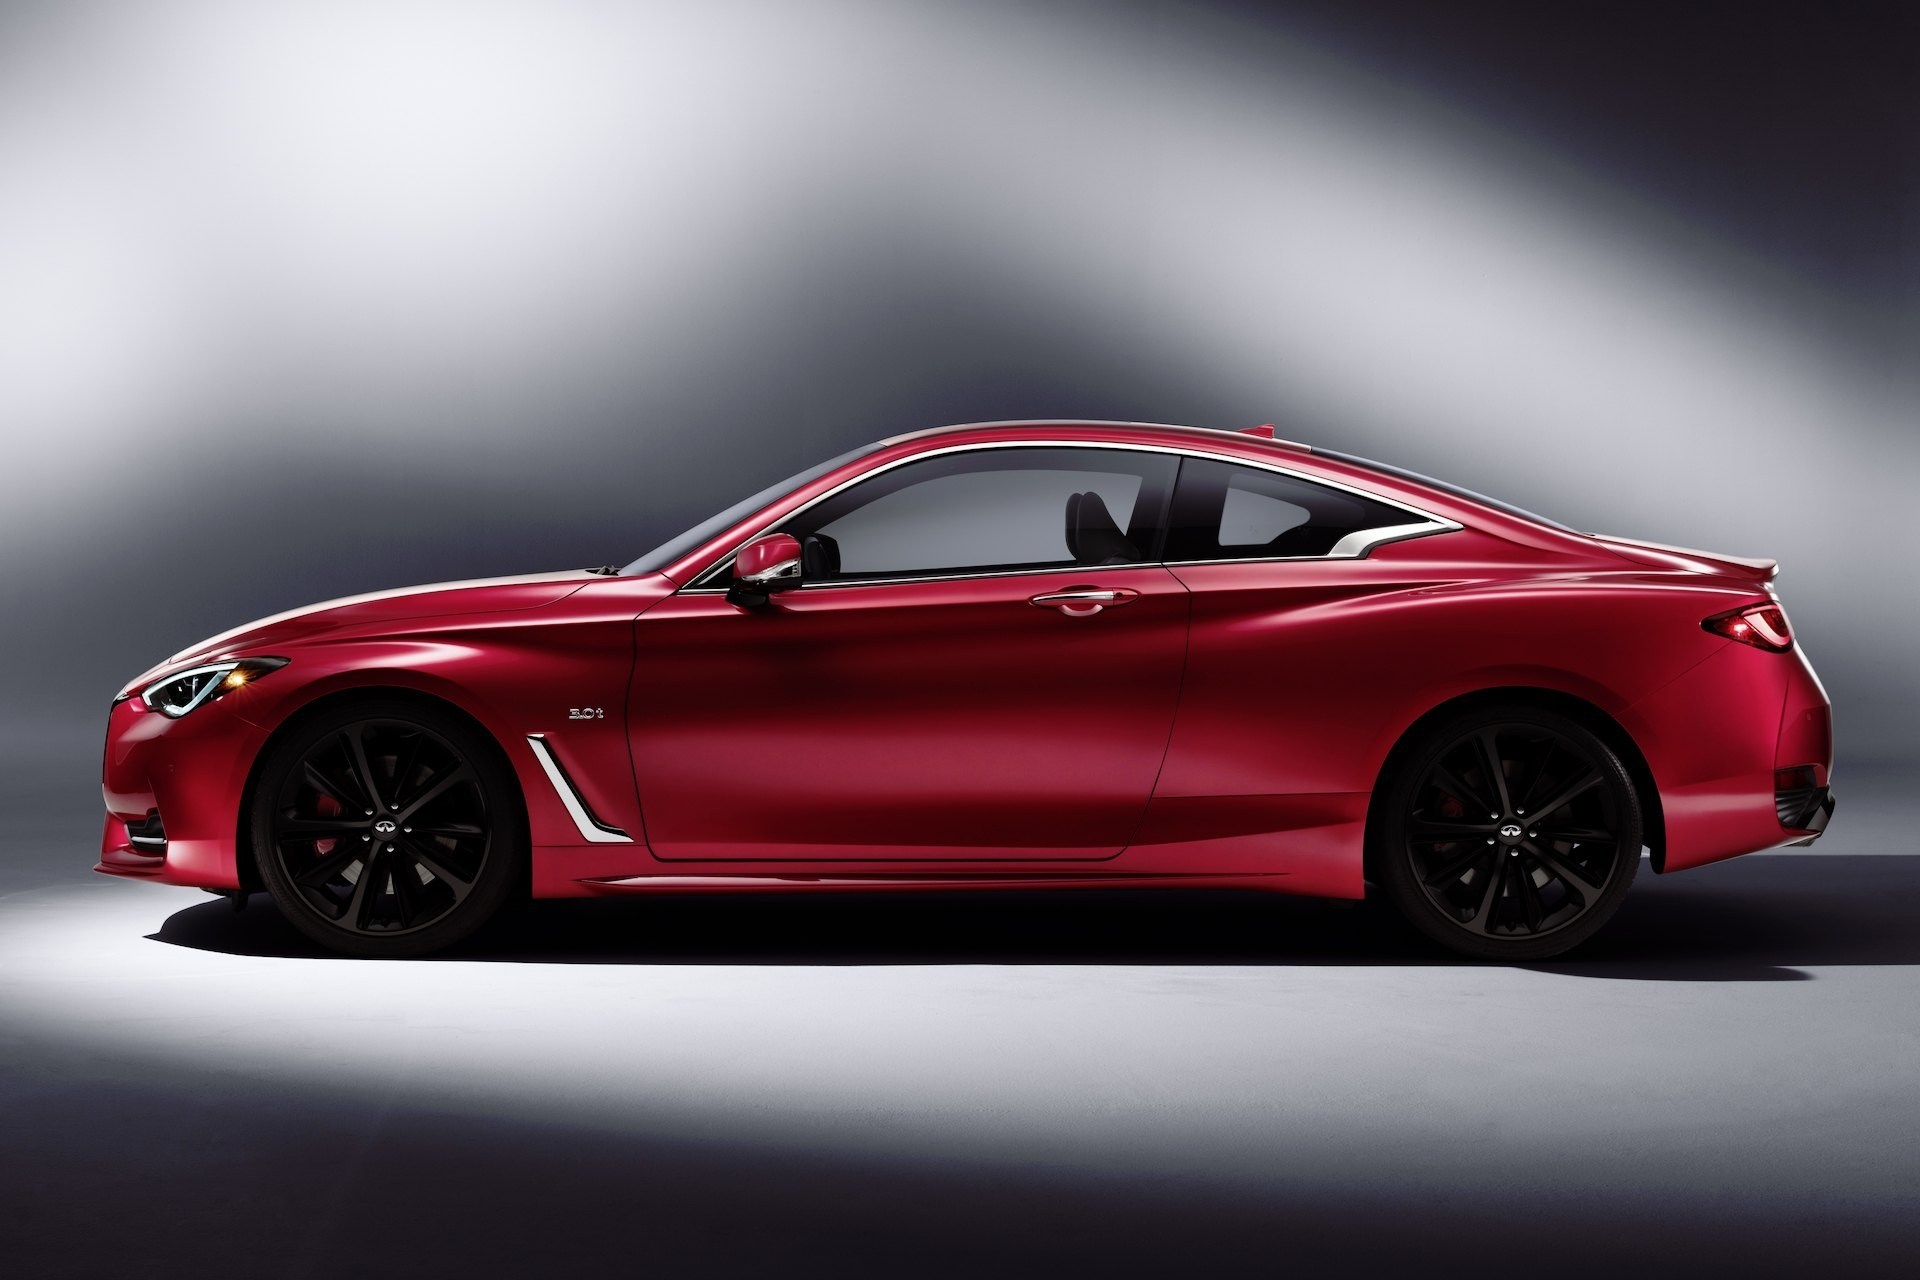 36 All New 2019 Infiniti Q60 Coupe Convertible Configurations